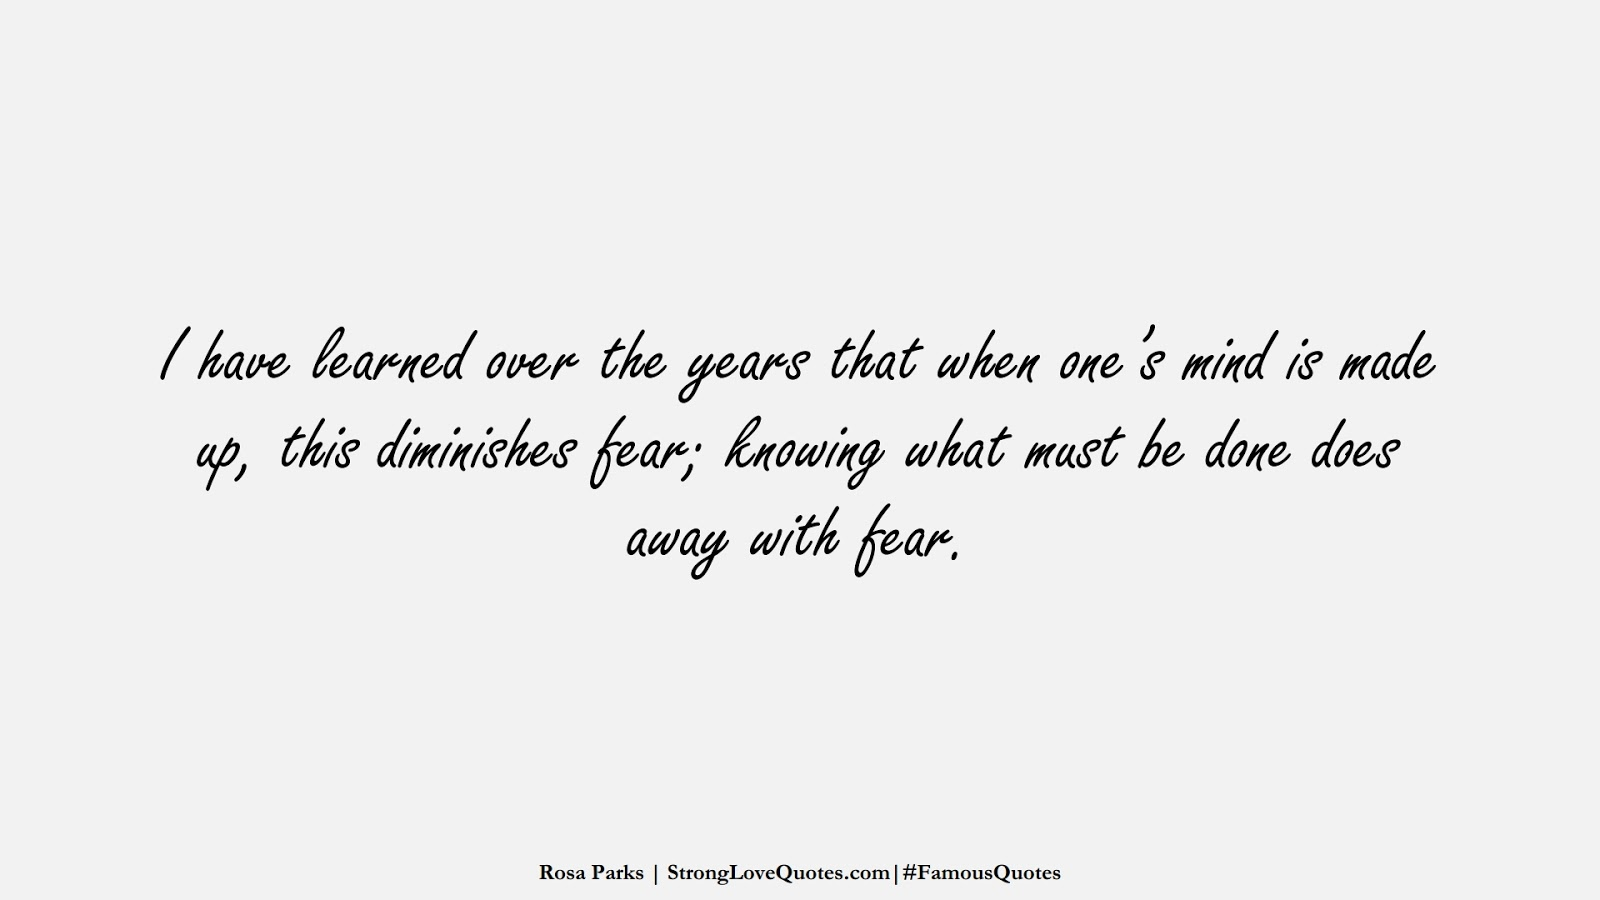 I have learned over the years that when one's mind is made up, this diminishes fear; knowing what must be done does away with fear. (Rosa Parks);  #FamousQuotes